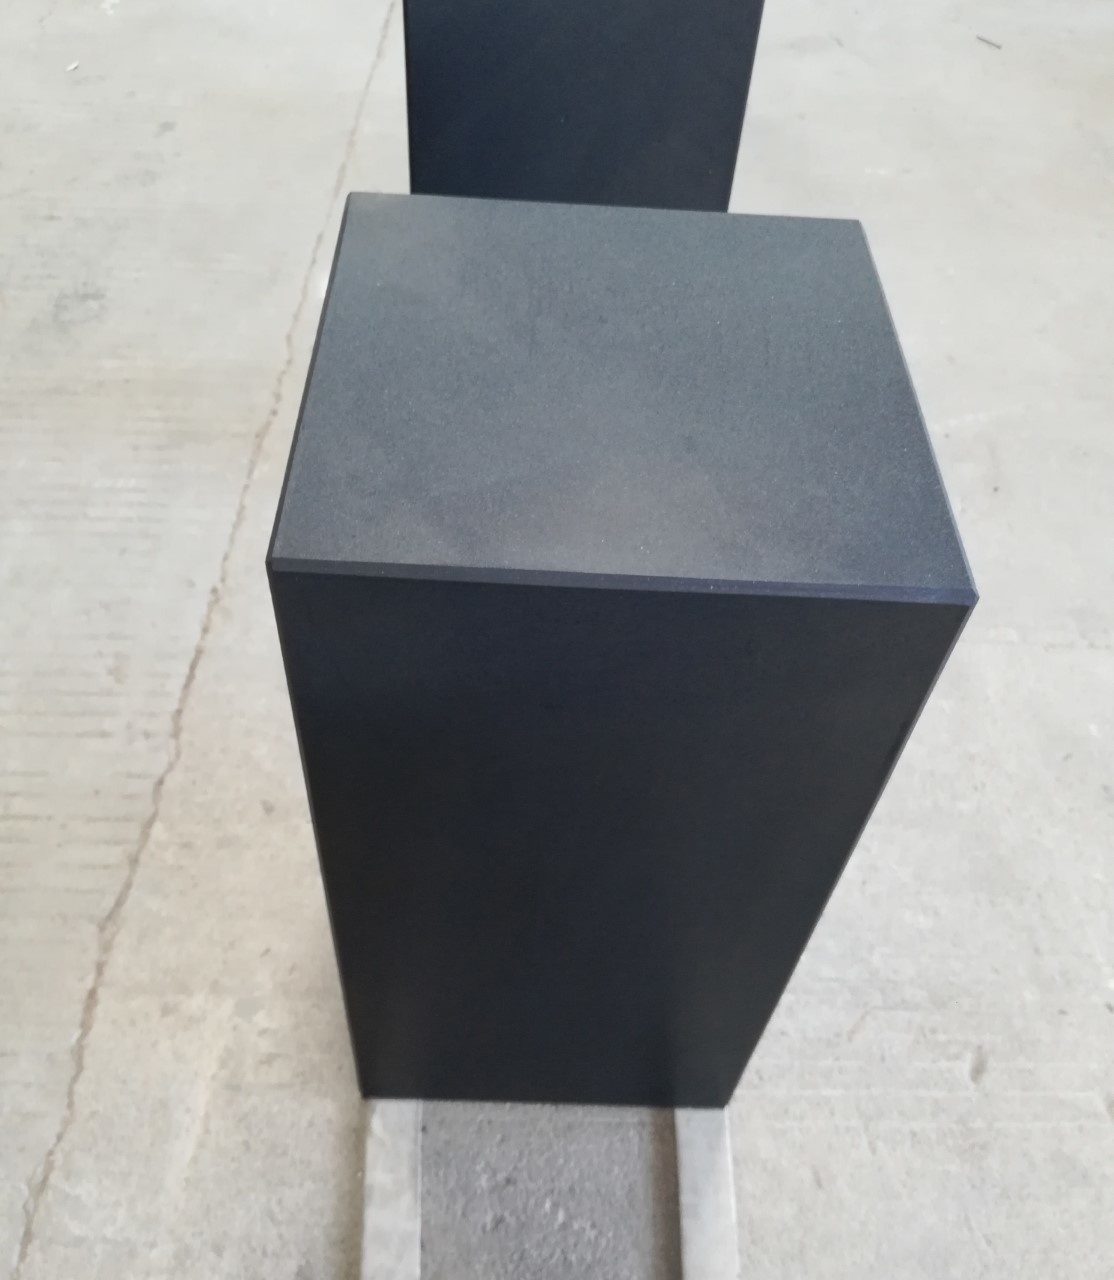 Eliassen Base black granite matt 30x30x75cm